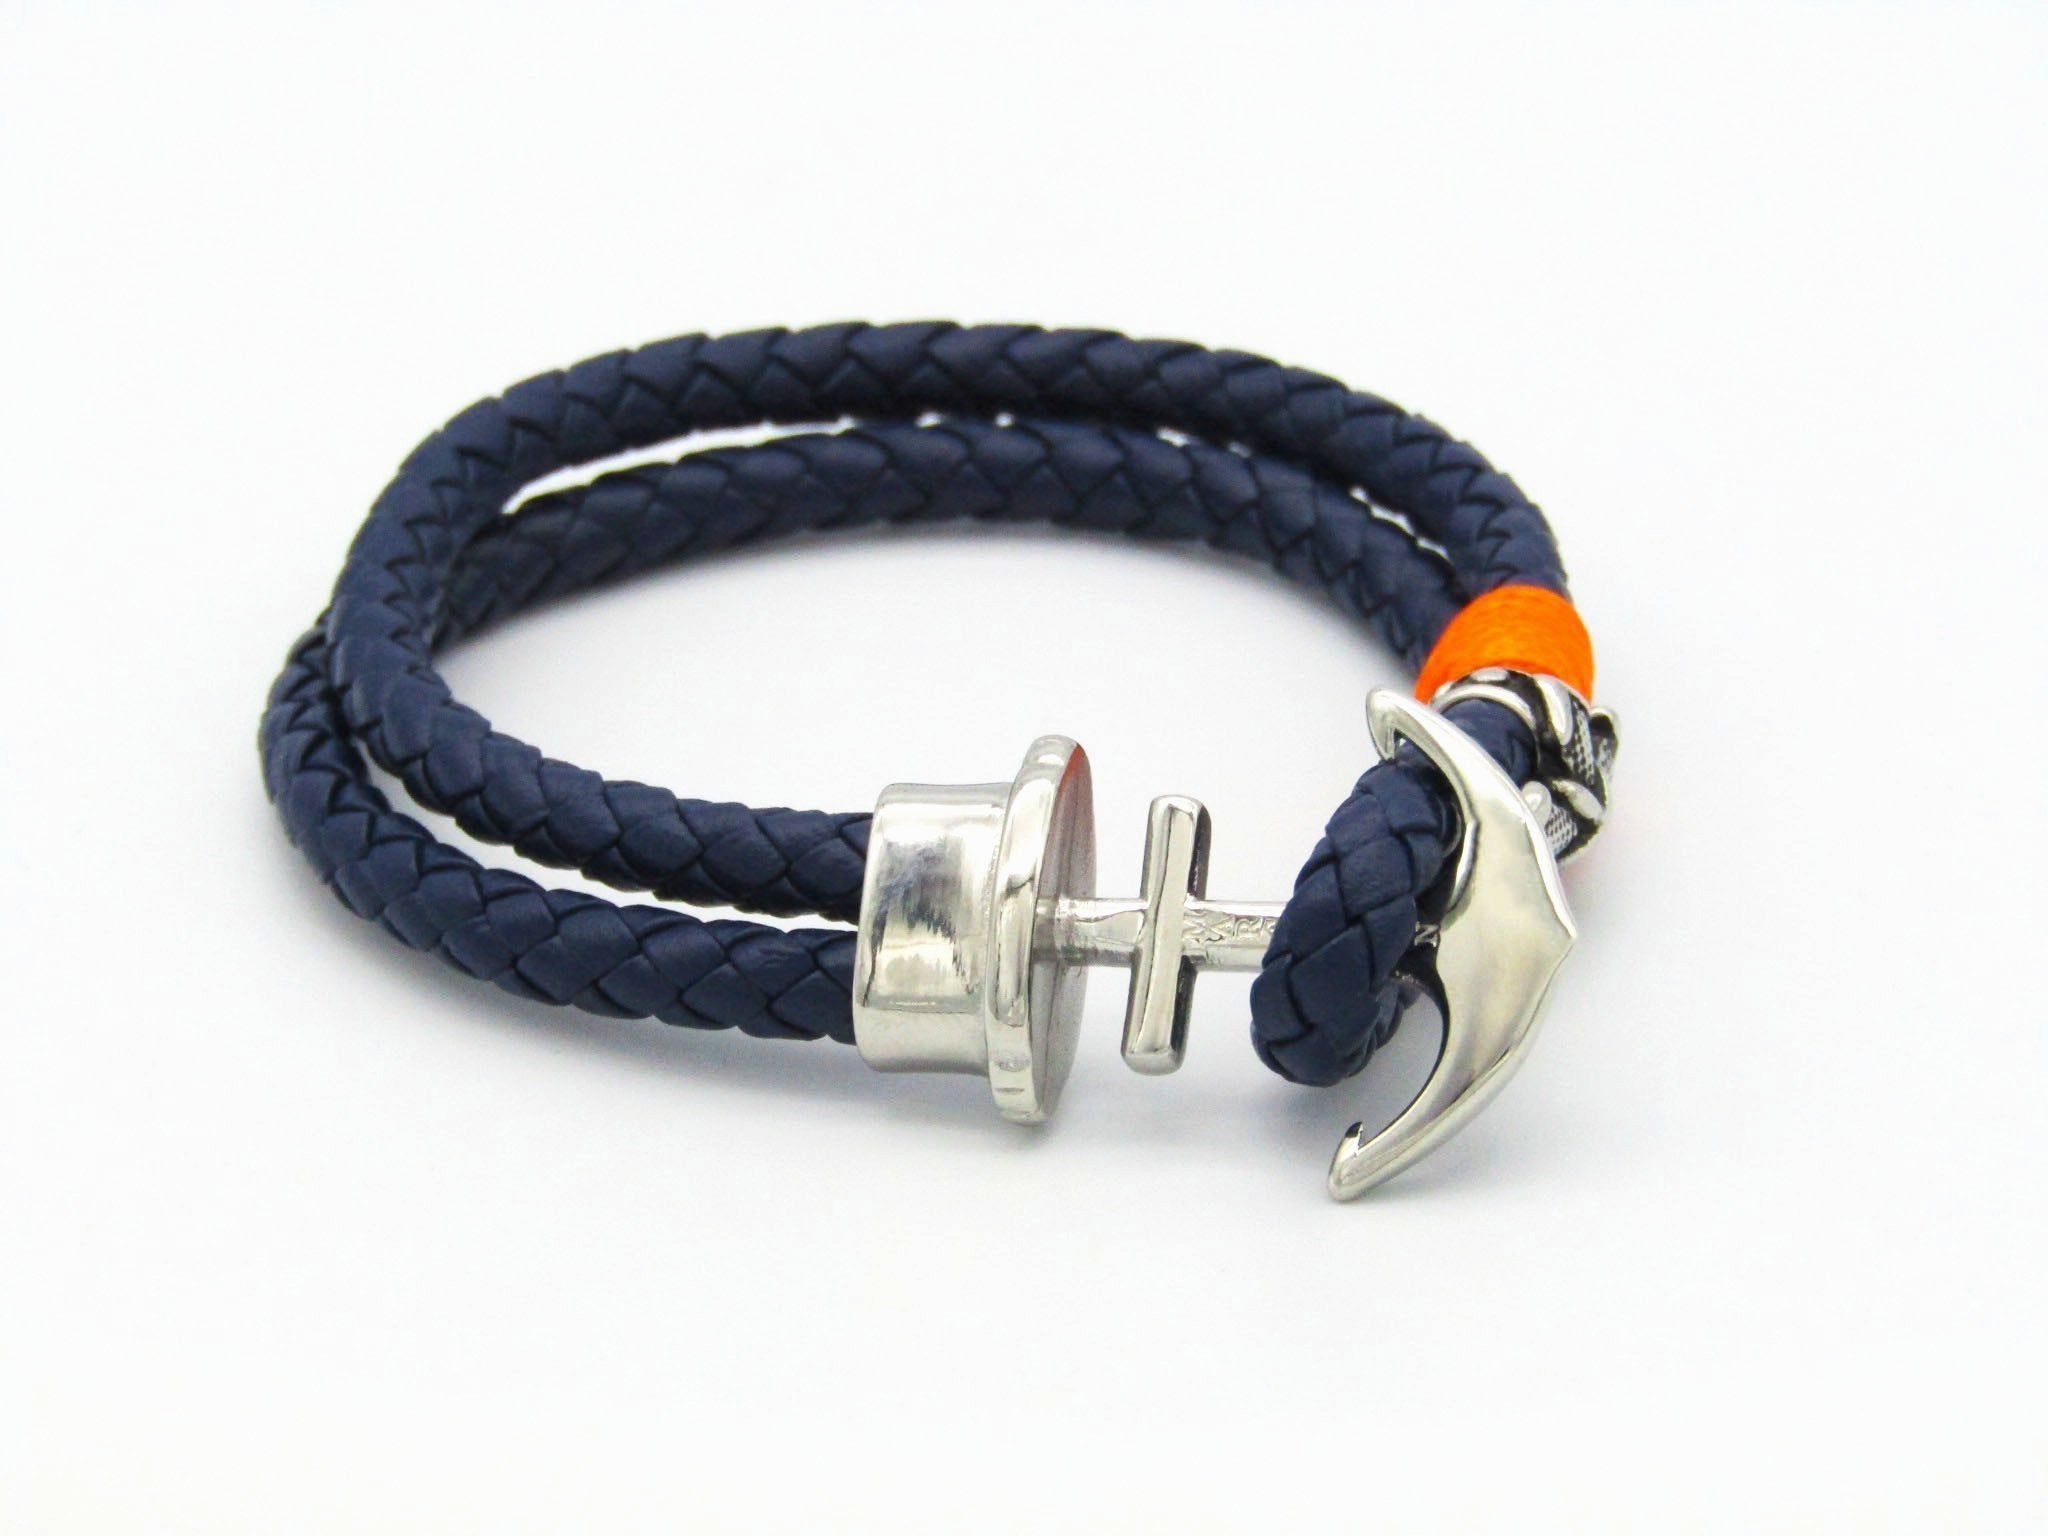 Maris Ocean Blue - MarcOcean  - jewellery  - necklace  - anchor